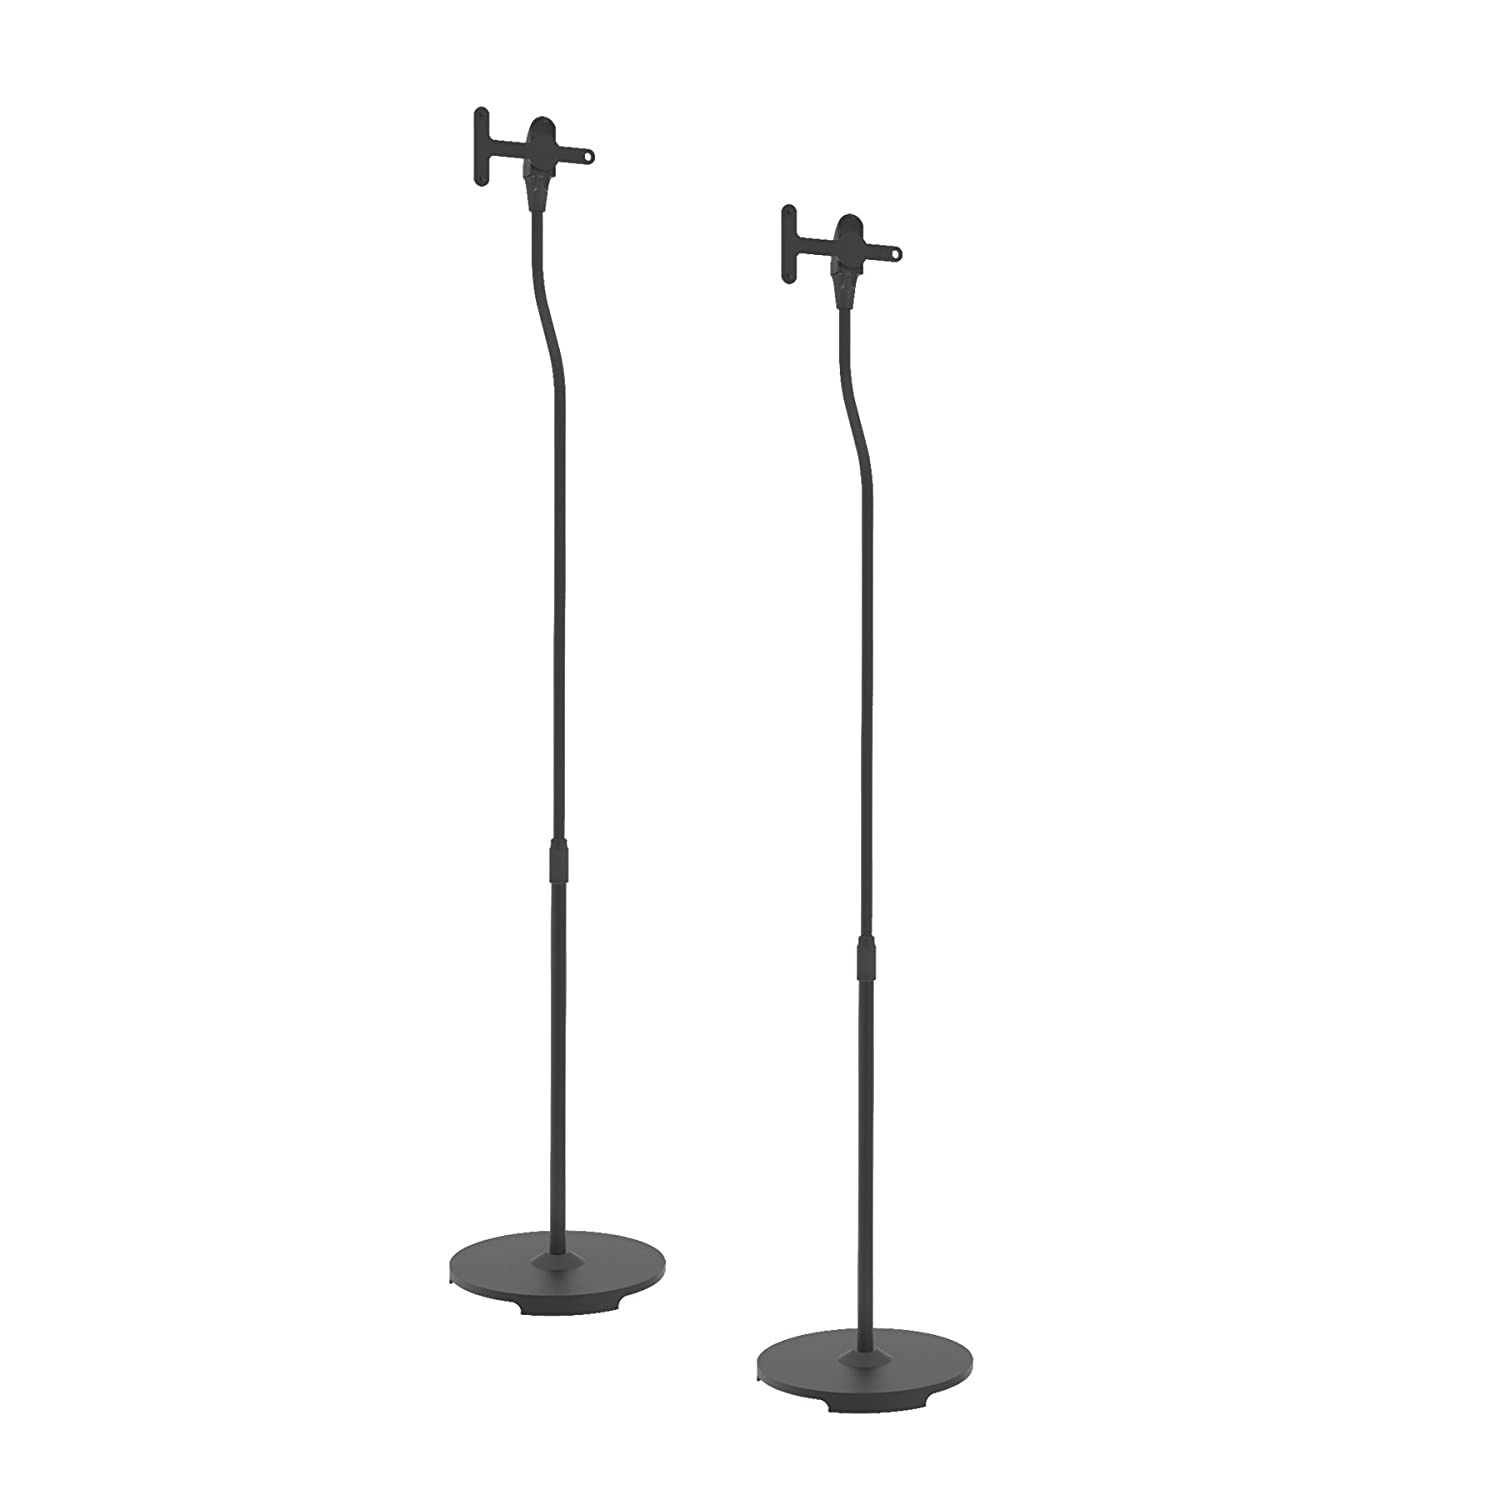 Pyle PSTNDSON16 Universal Speaker Stands, Standing Mount Holders, Adjustable Height